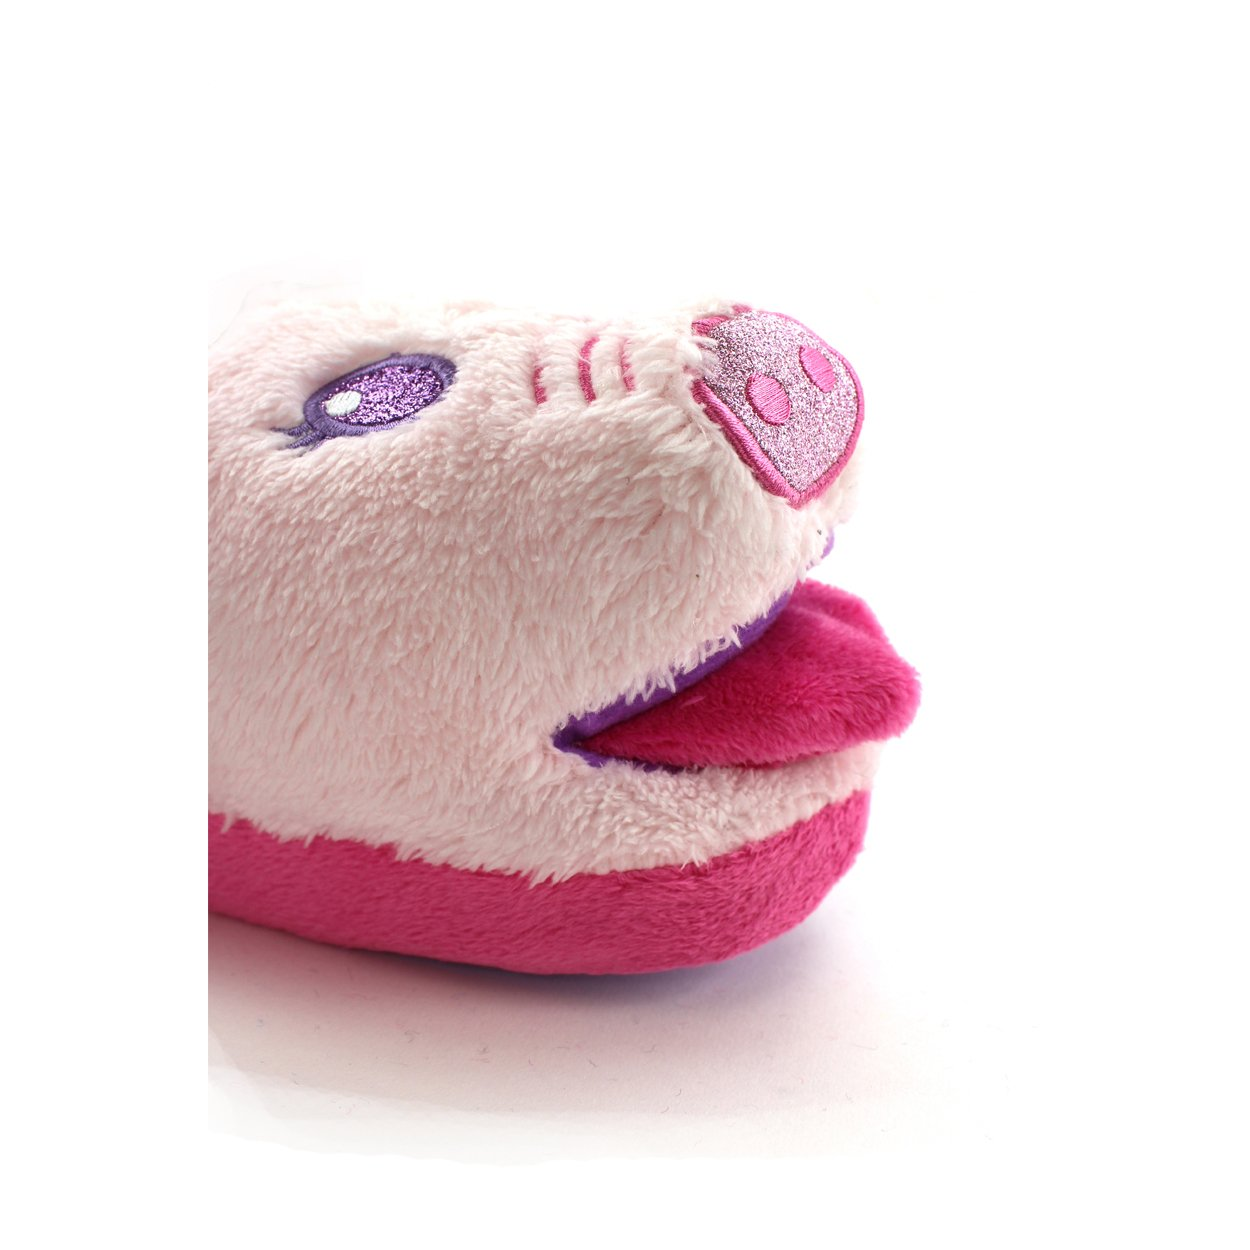 Wiggle Warms Angel the Pig Kids Scuff Slippers manufacturer